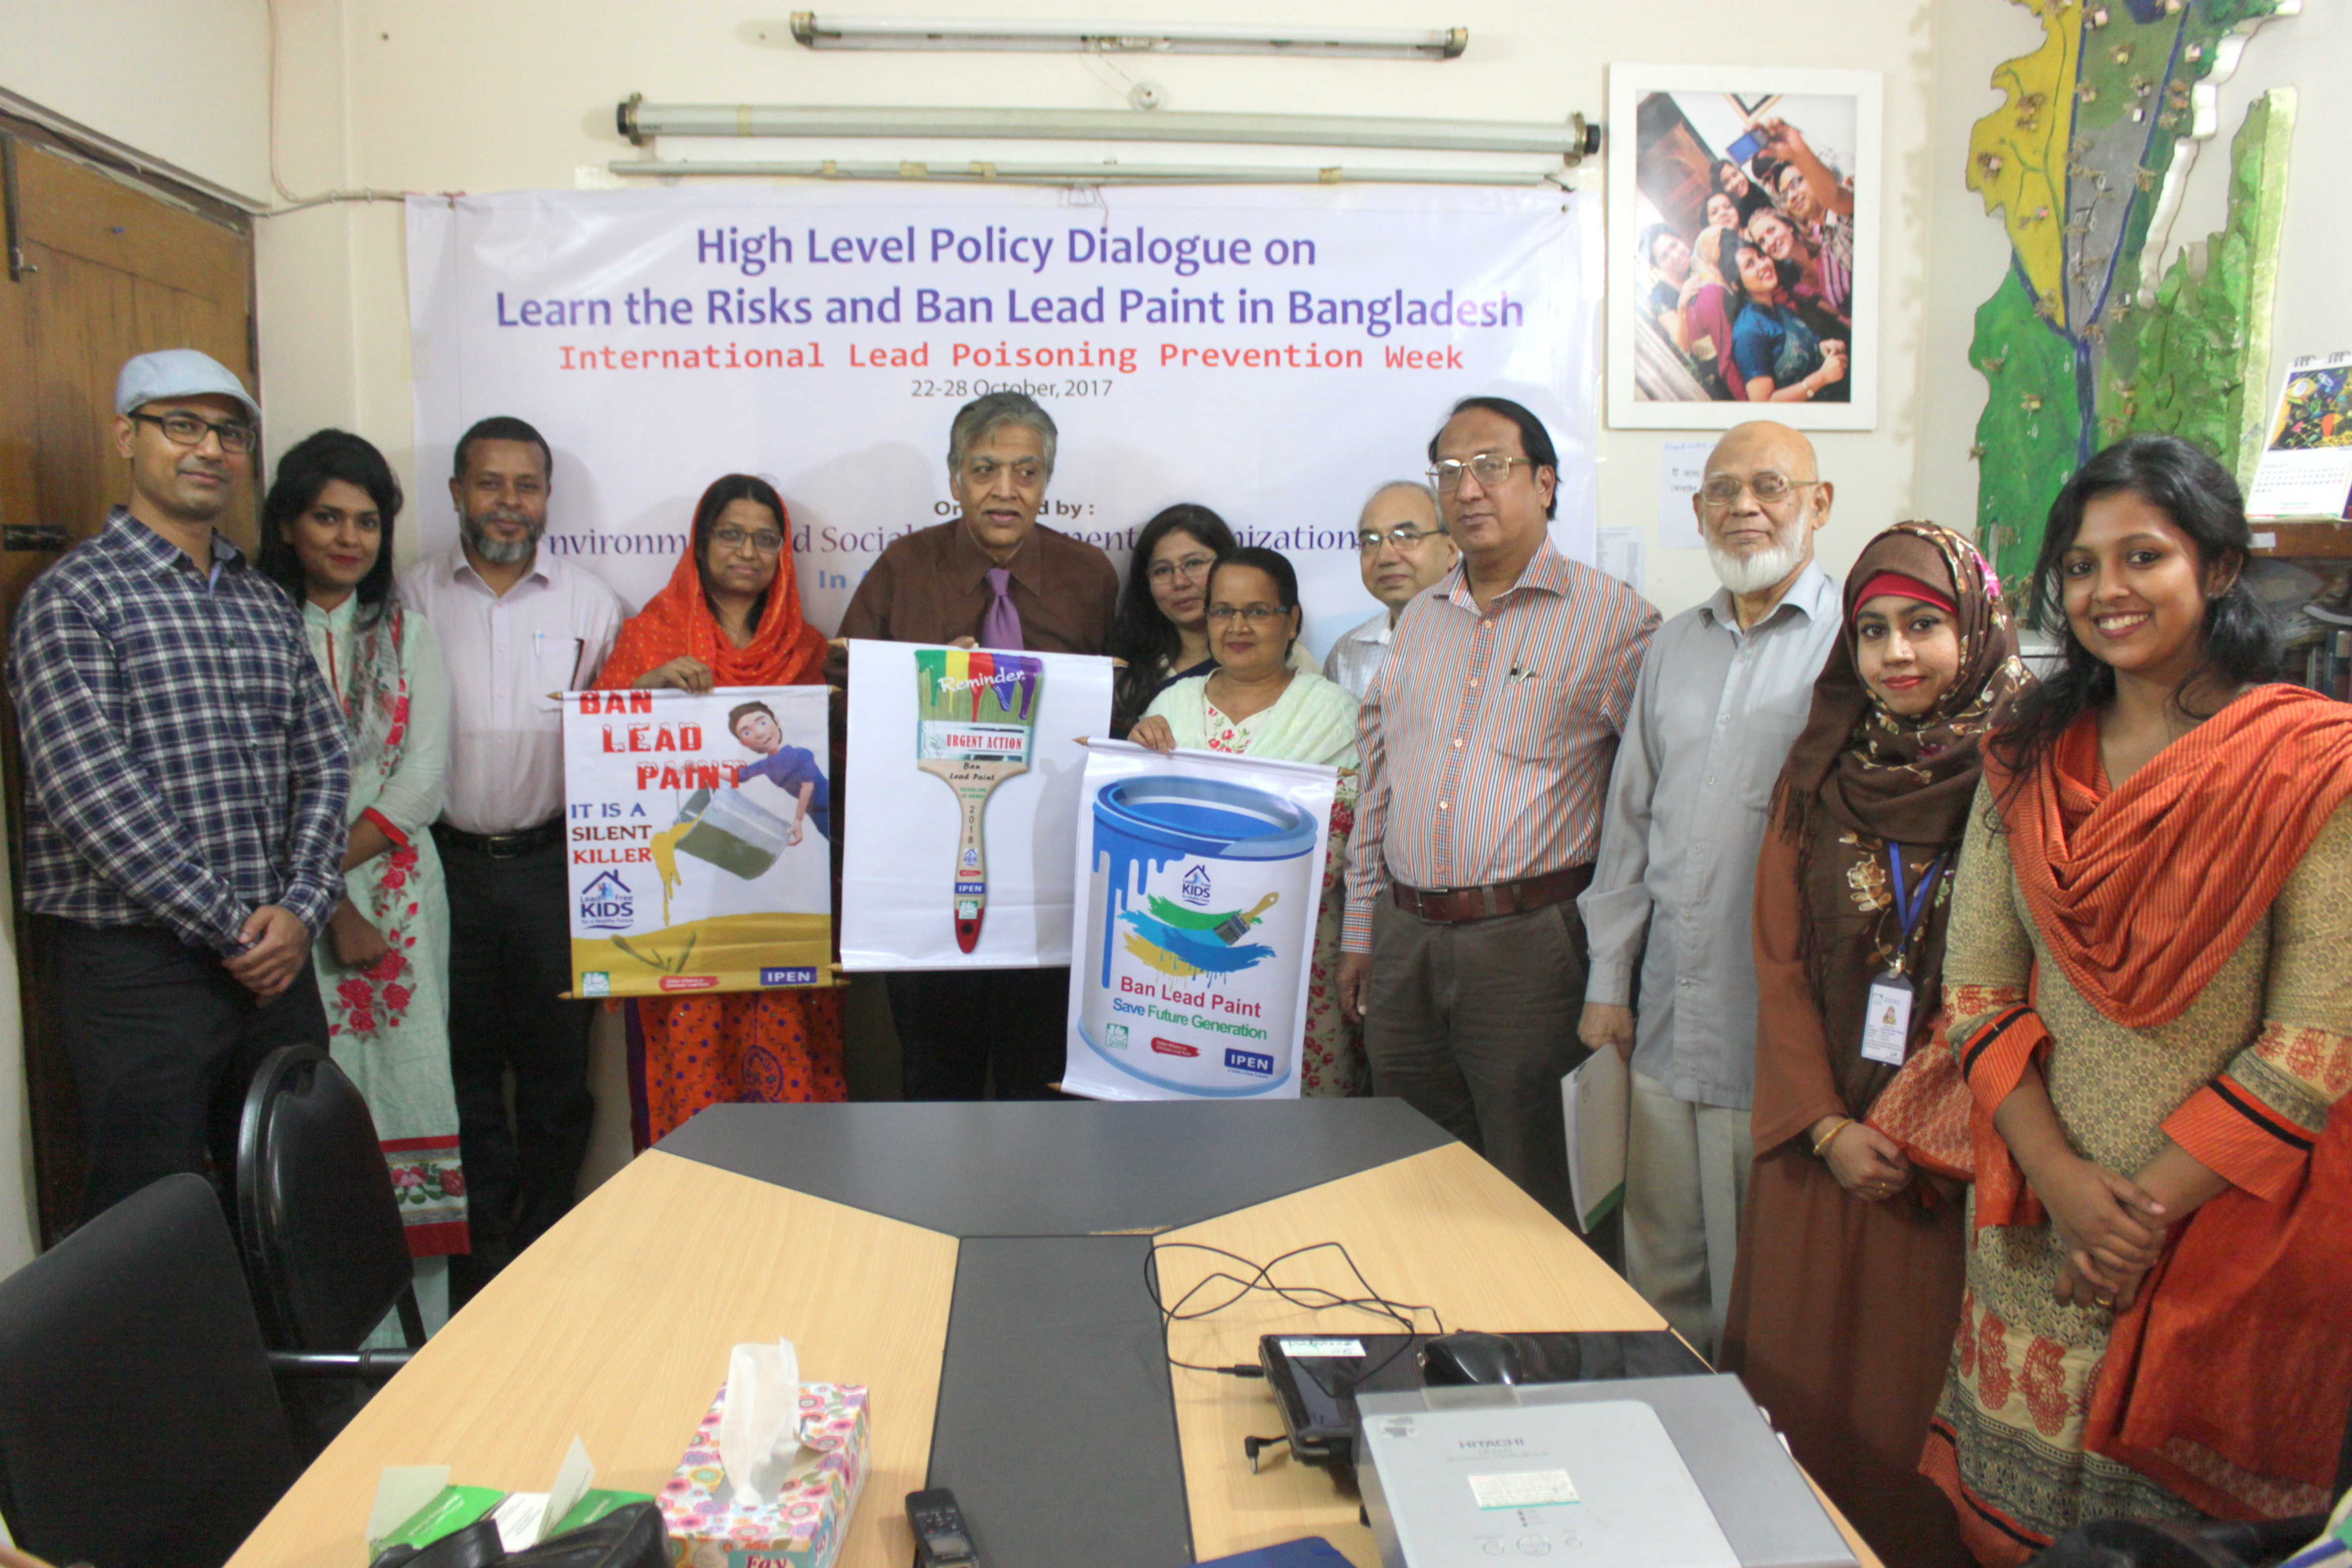 High Level Policy Dialogue On 'Learn the Risks and Ban Lead Paint'